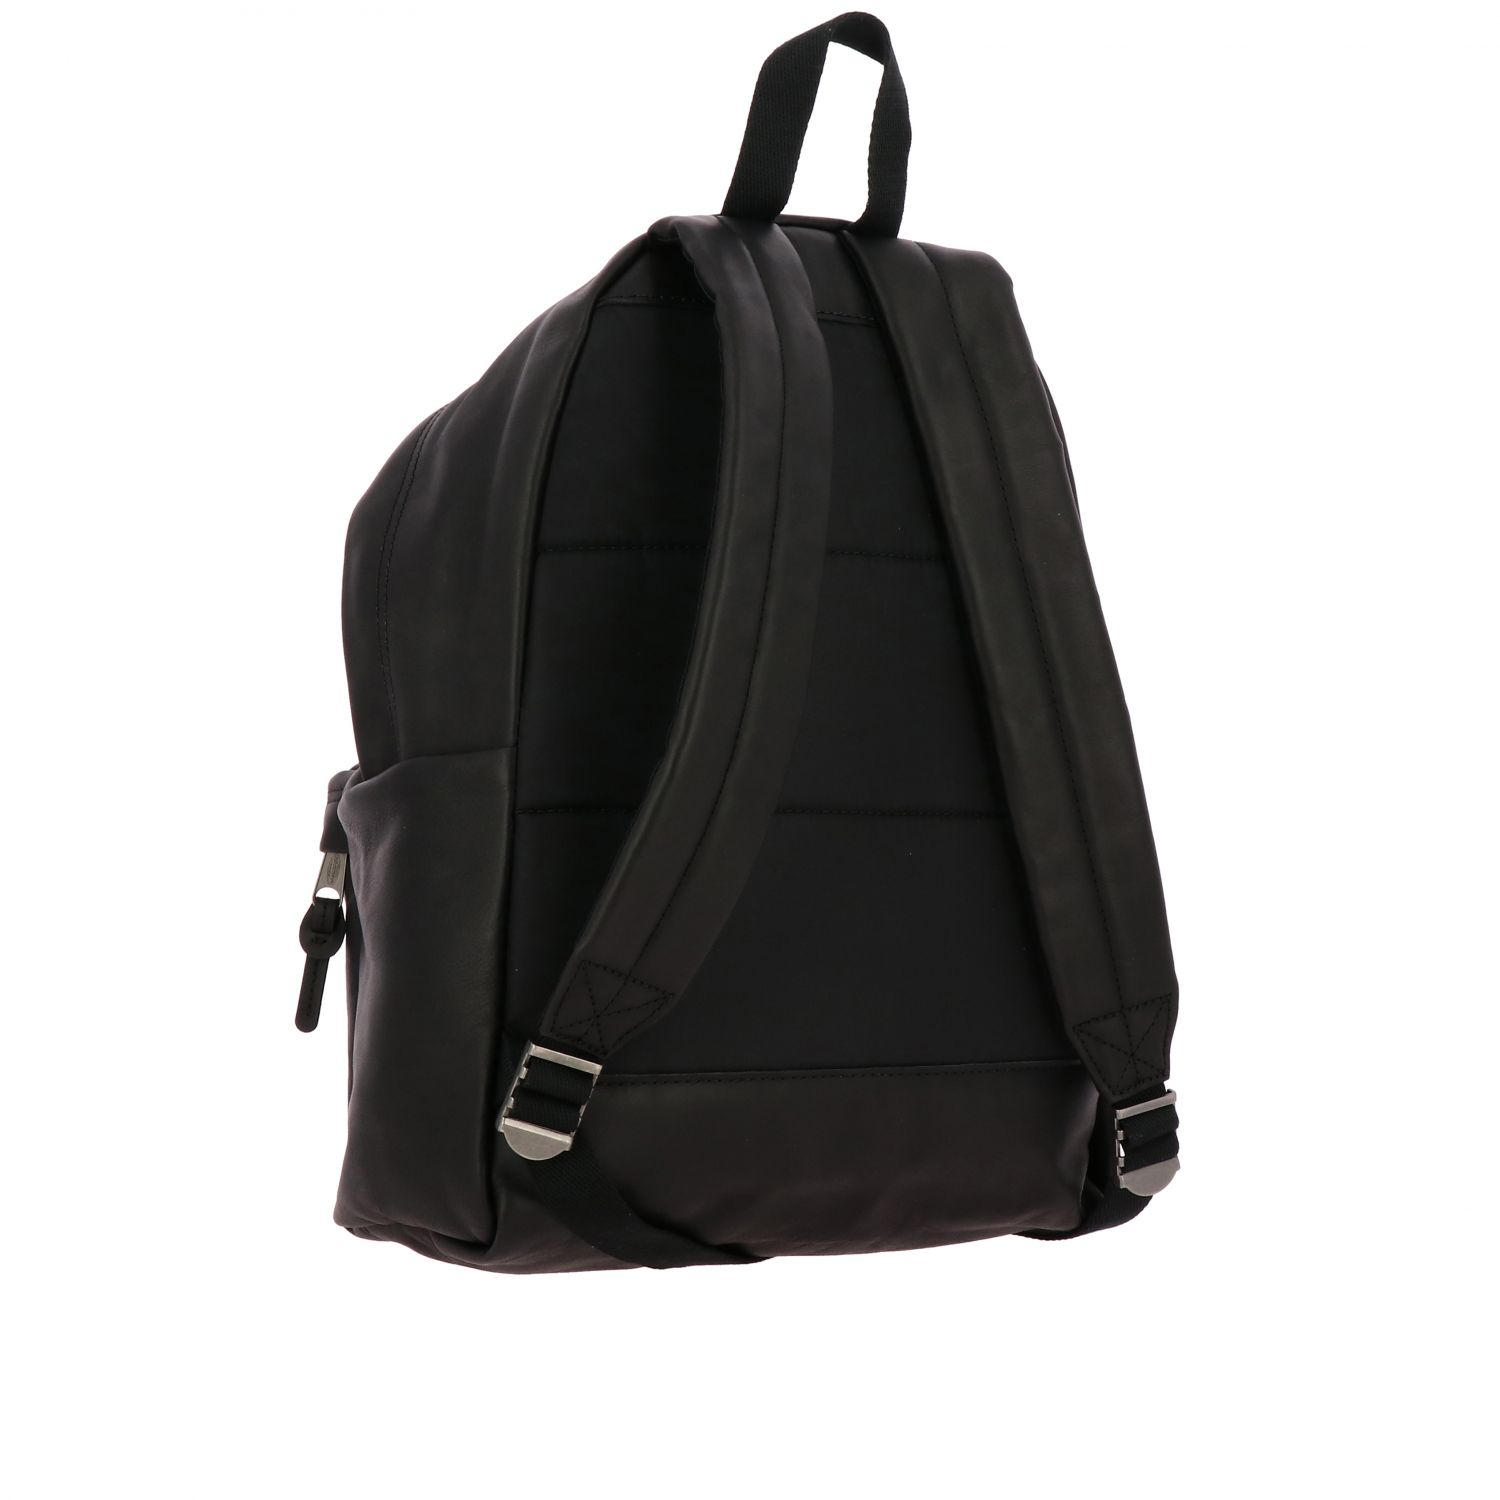 Backpack Eastpak: Shoulder bag women Eastpak black 3